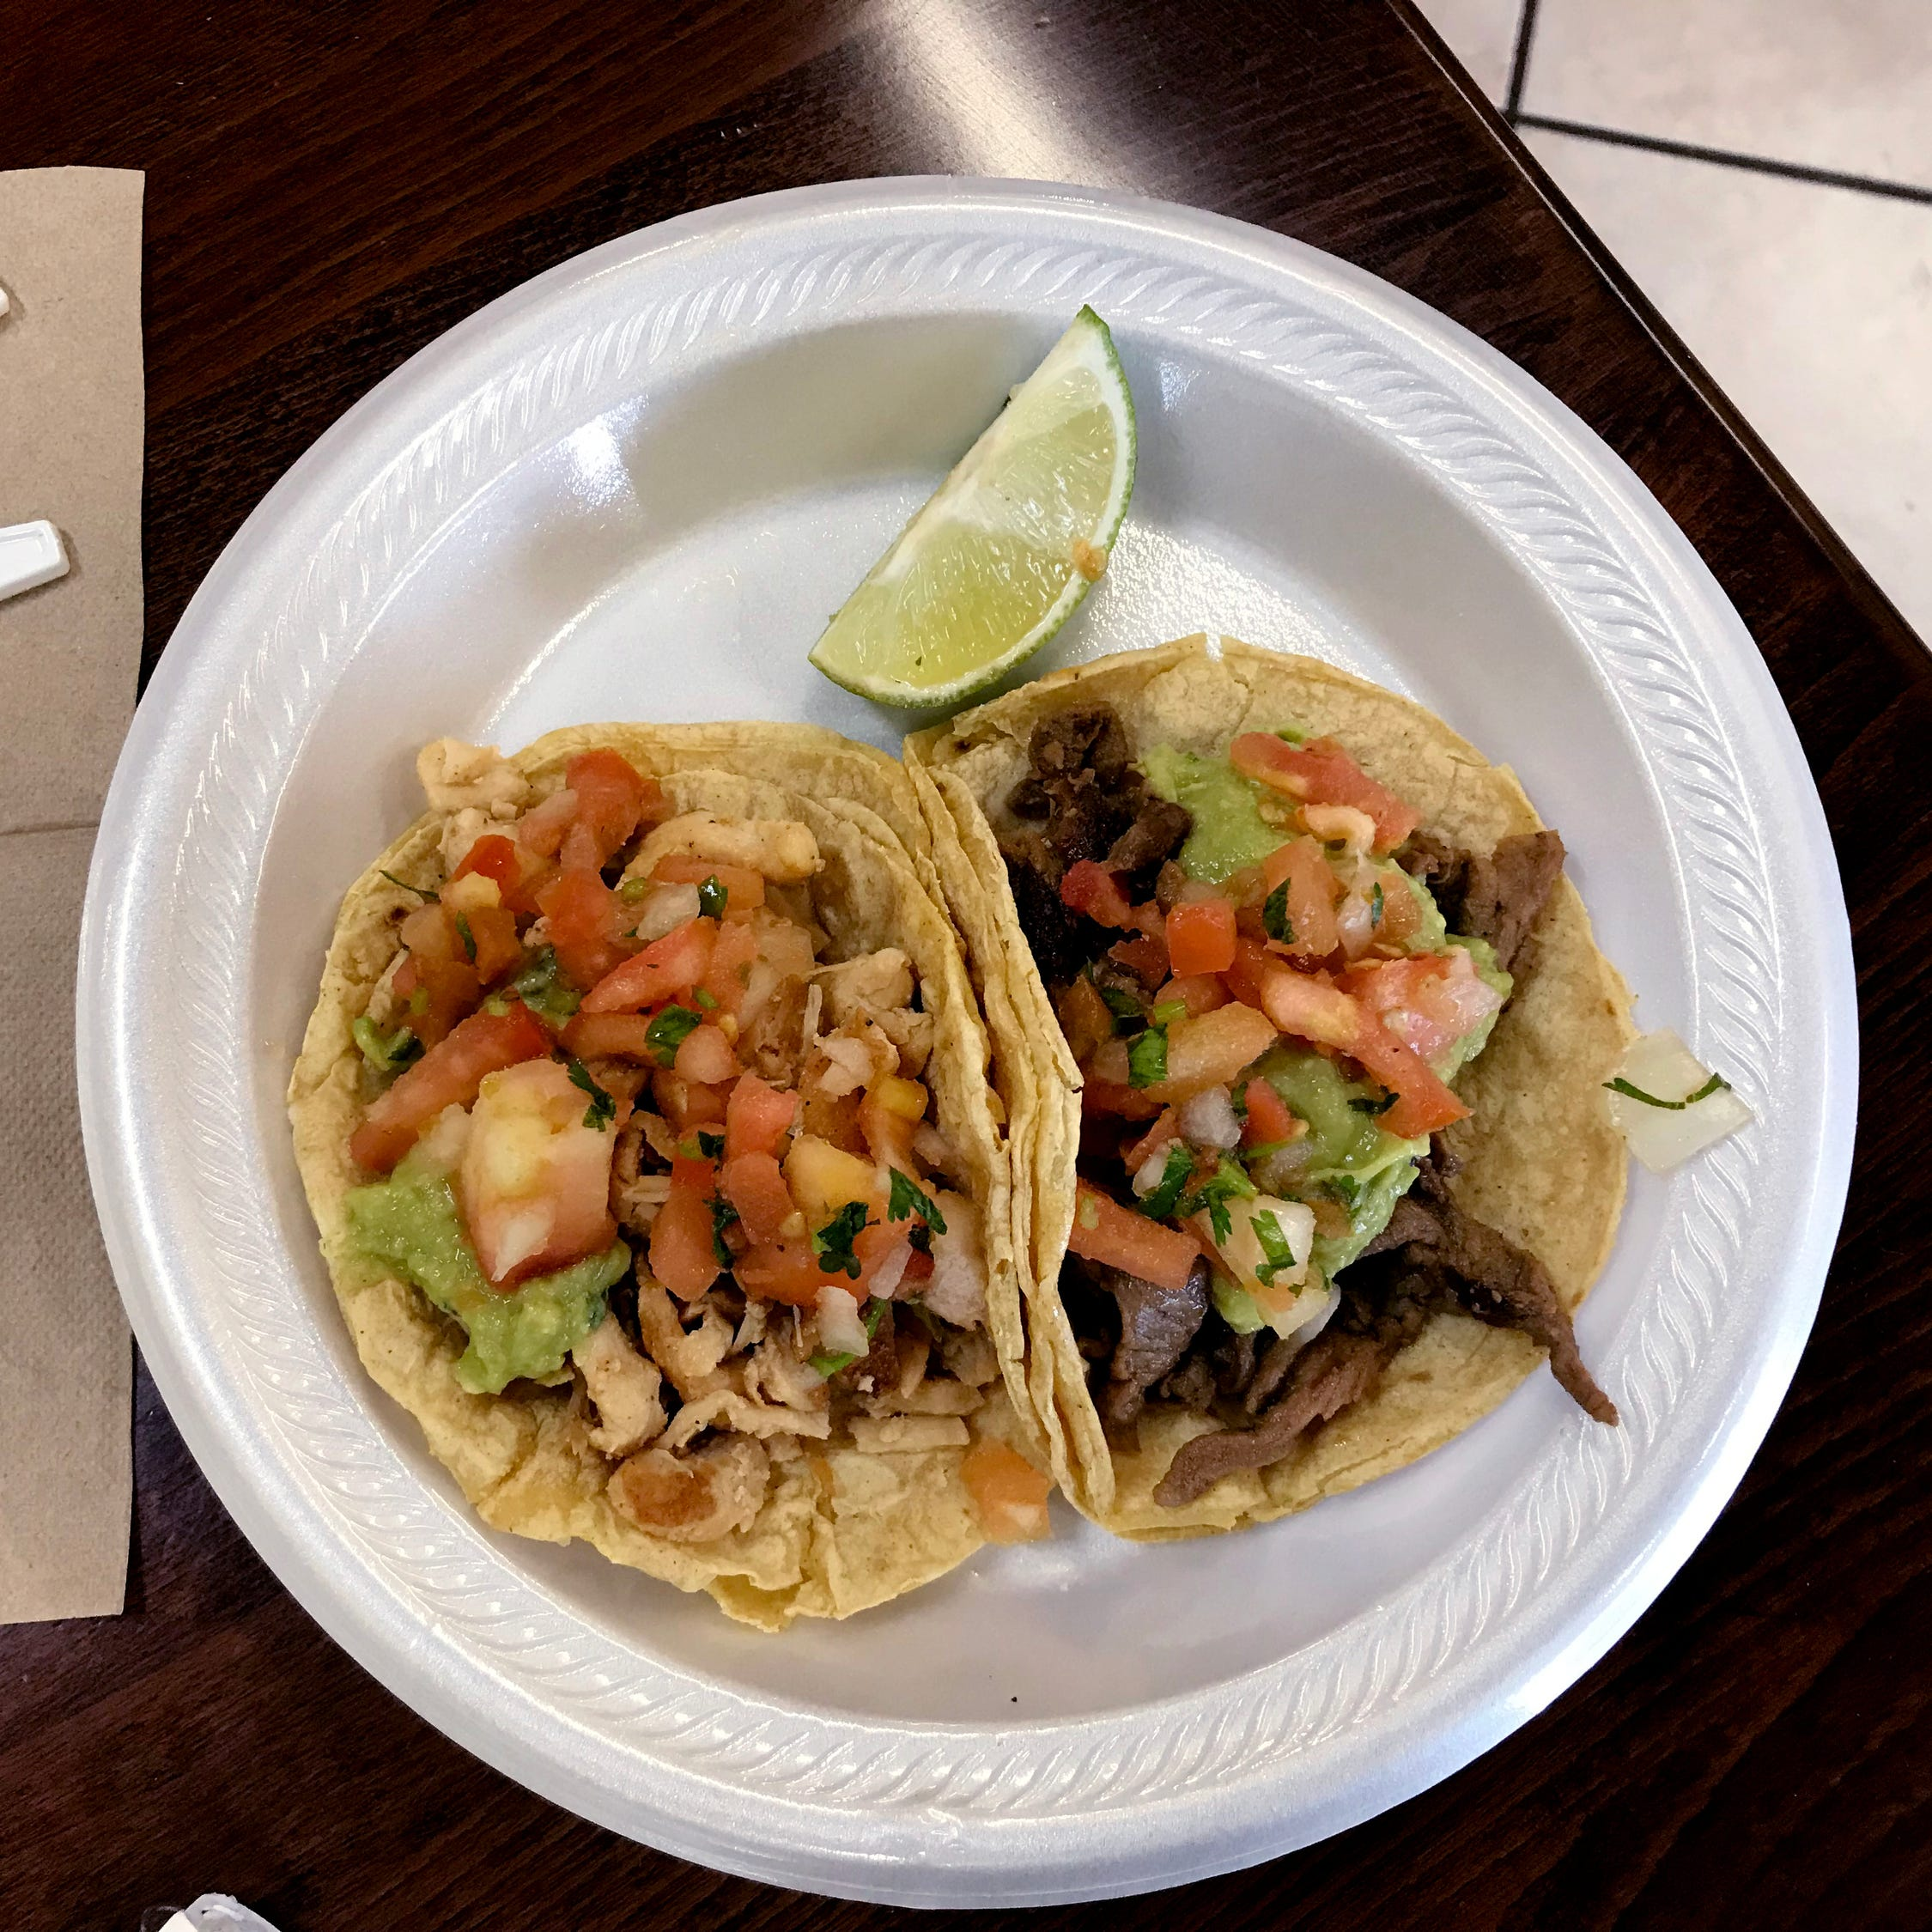 Cheap eats: Oscar's Taco Shop offers yummy Cali-Mex lunch for less than $10